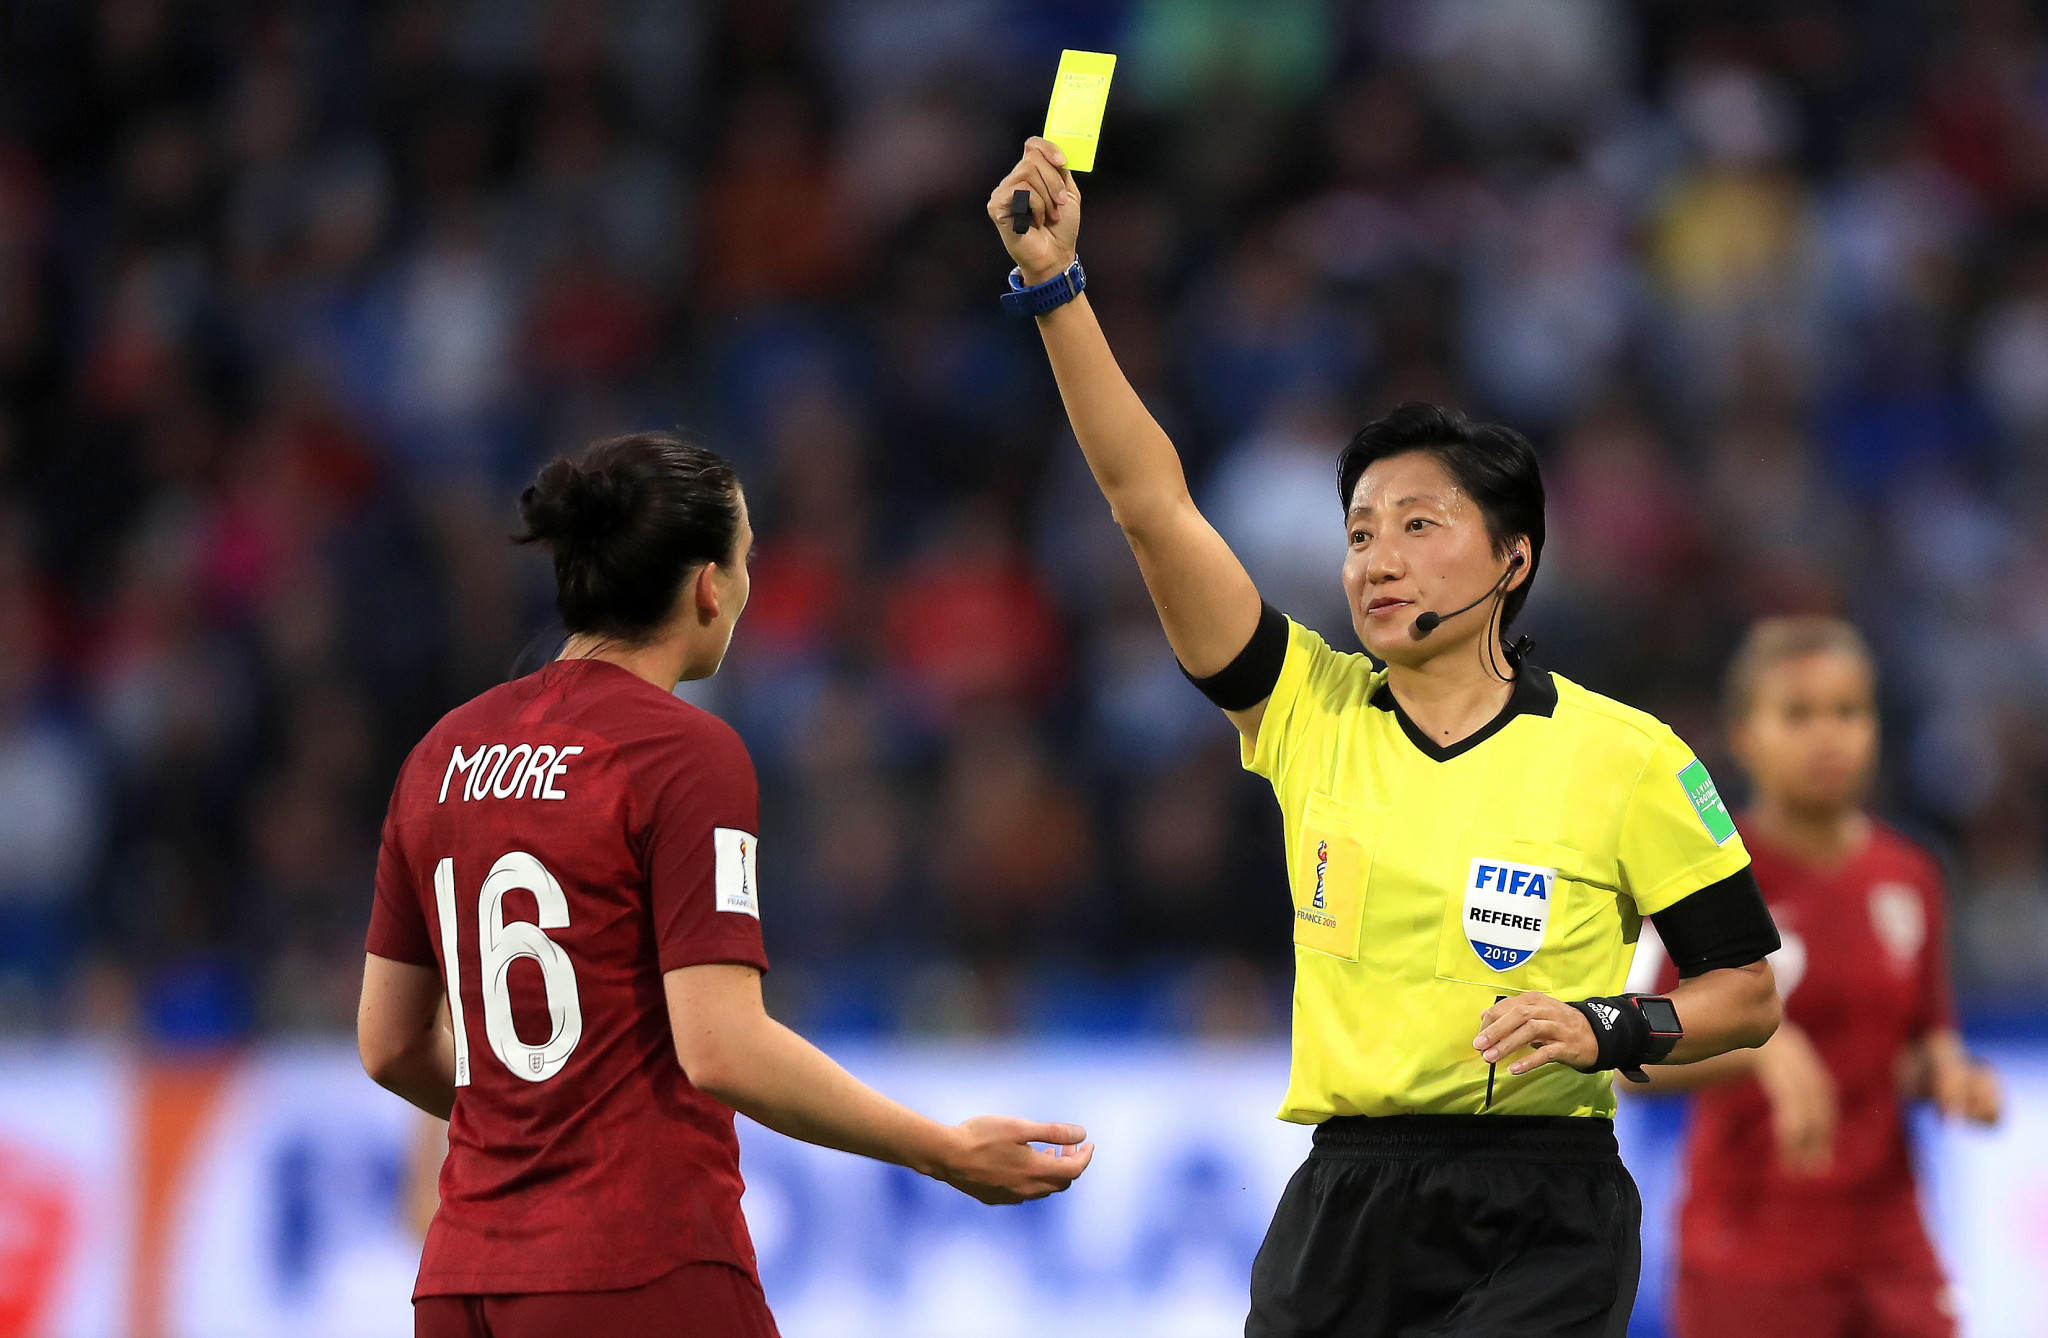 Referee Liang Qin shows Jade Moore of England a yellow card ©Getty Images